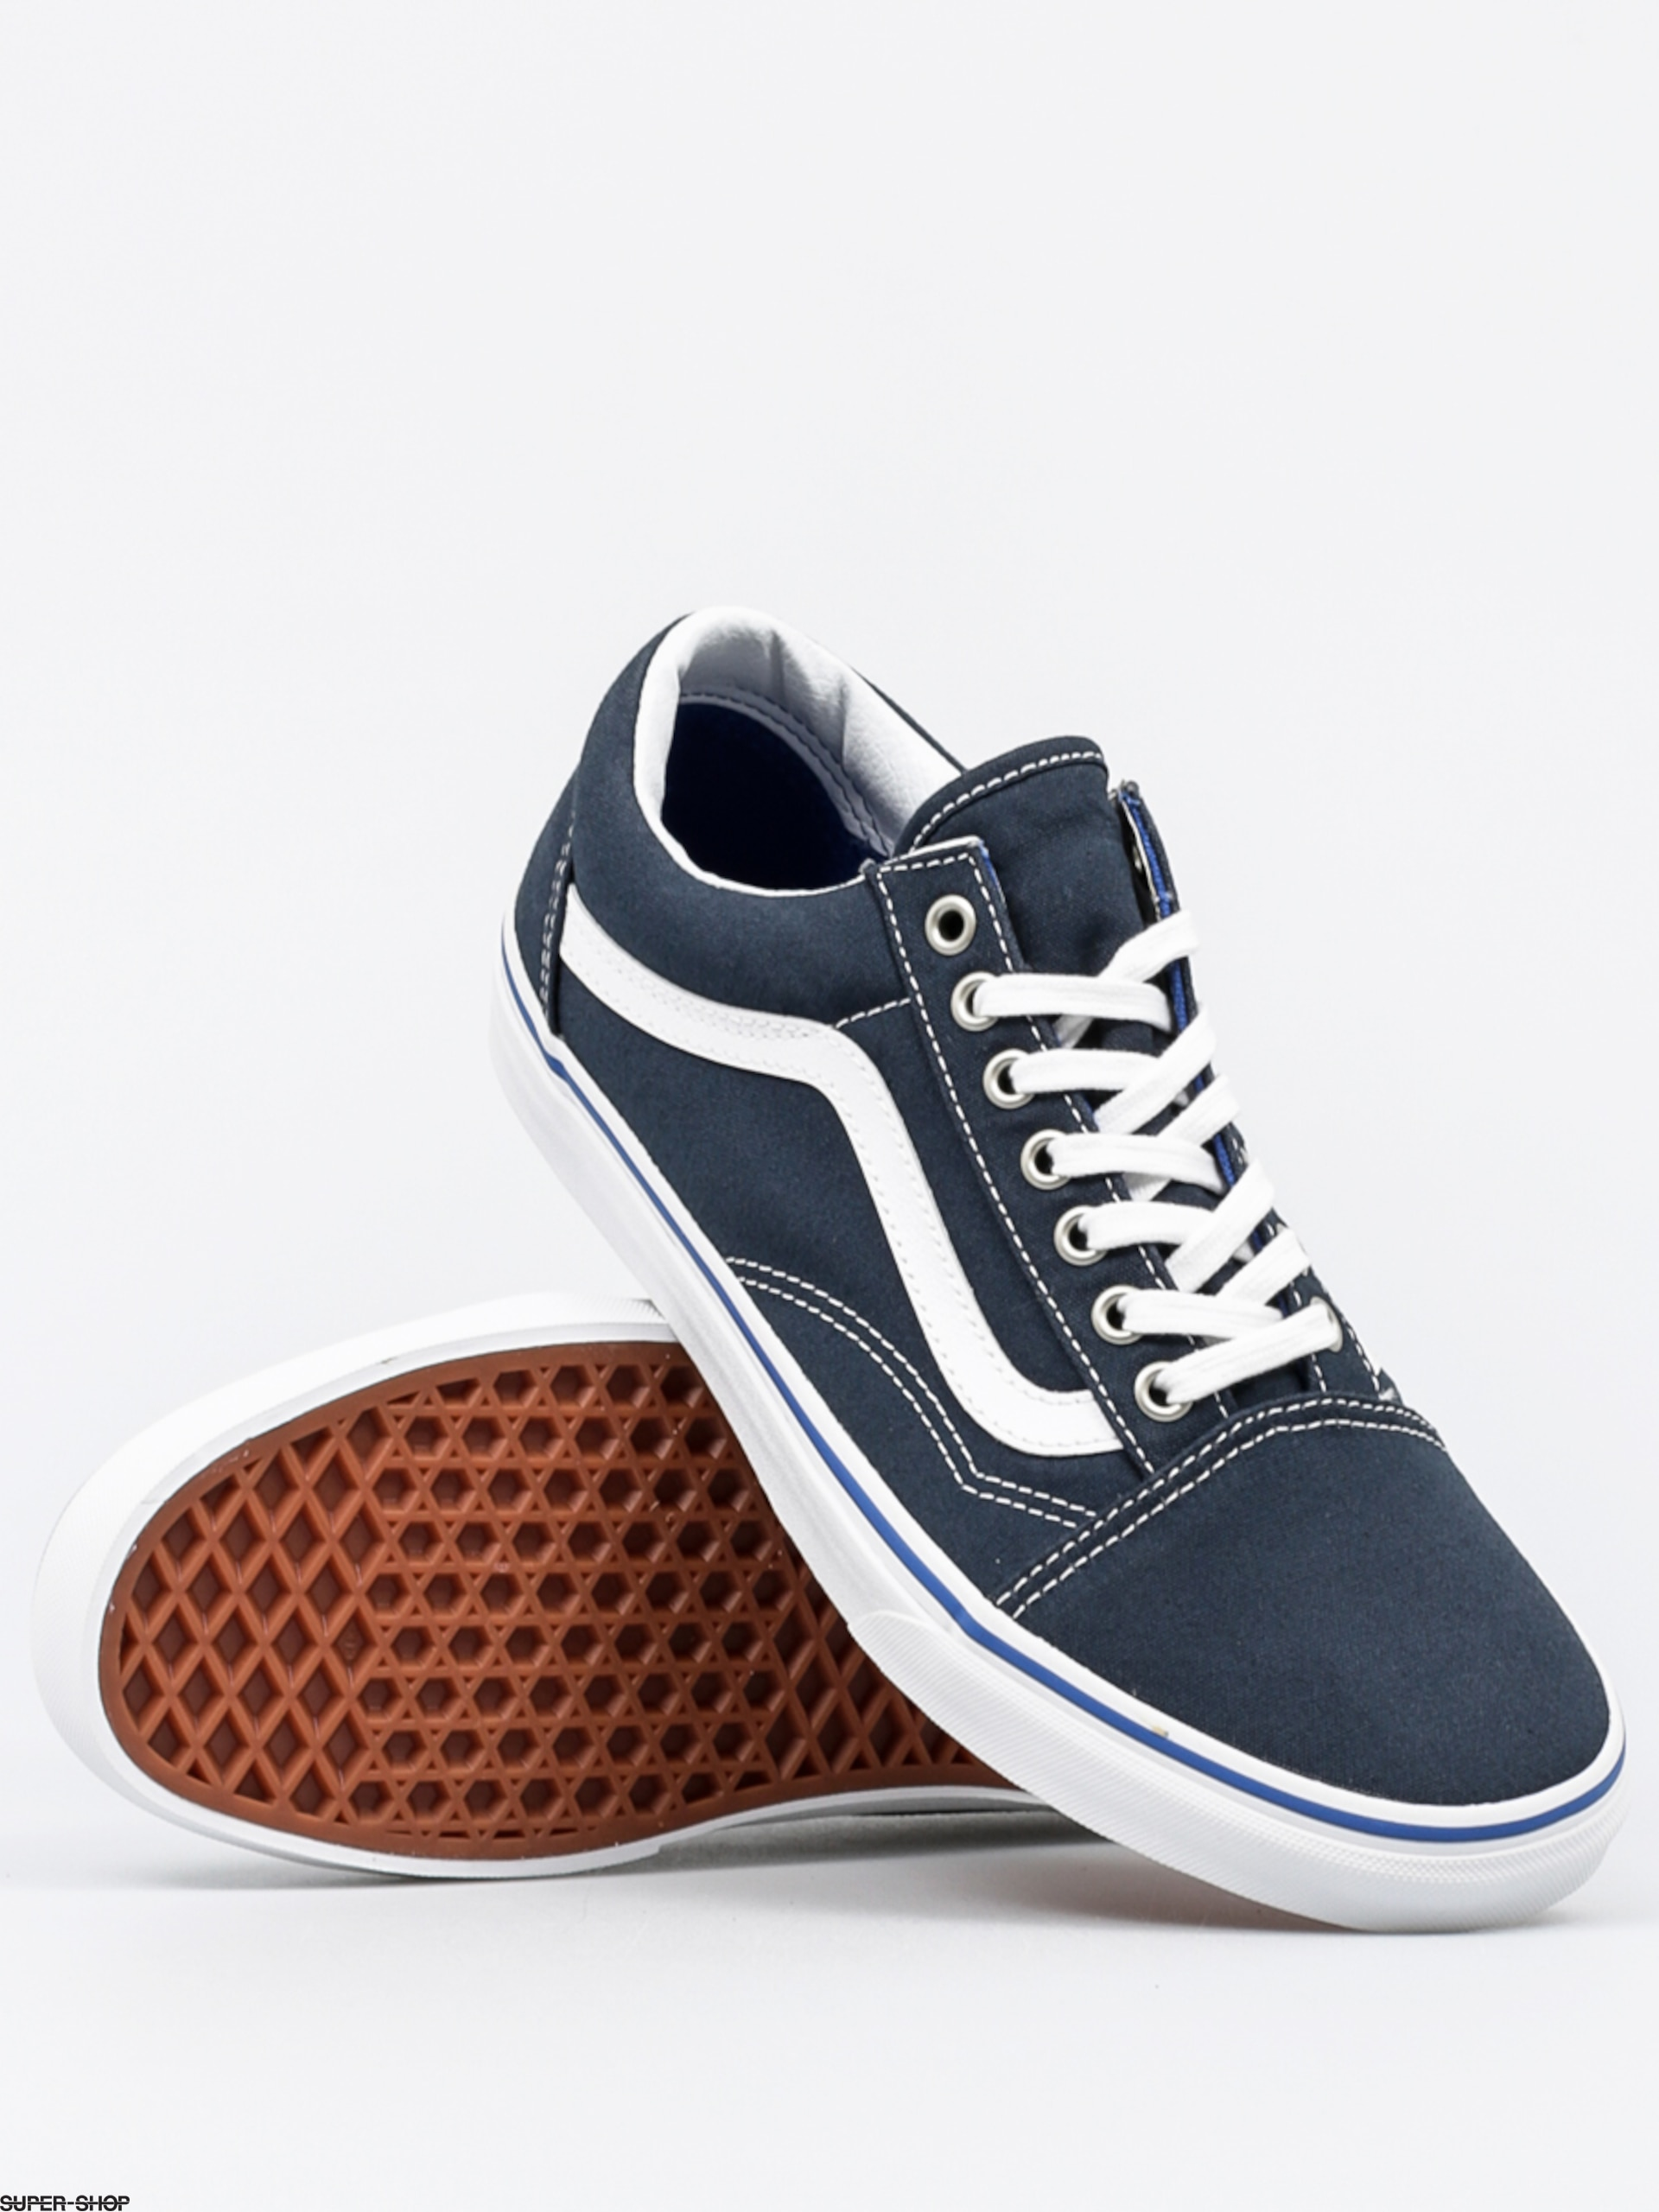 vans shoes old skool midnight navy true white. Black Bedroom Furniture Sets. Home Design Ideas